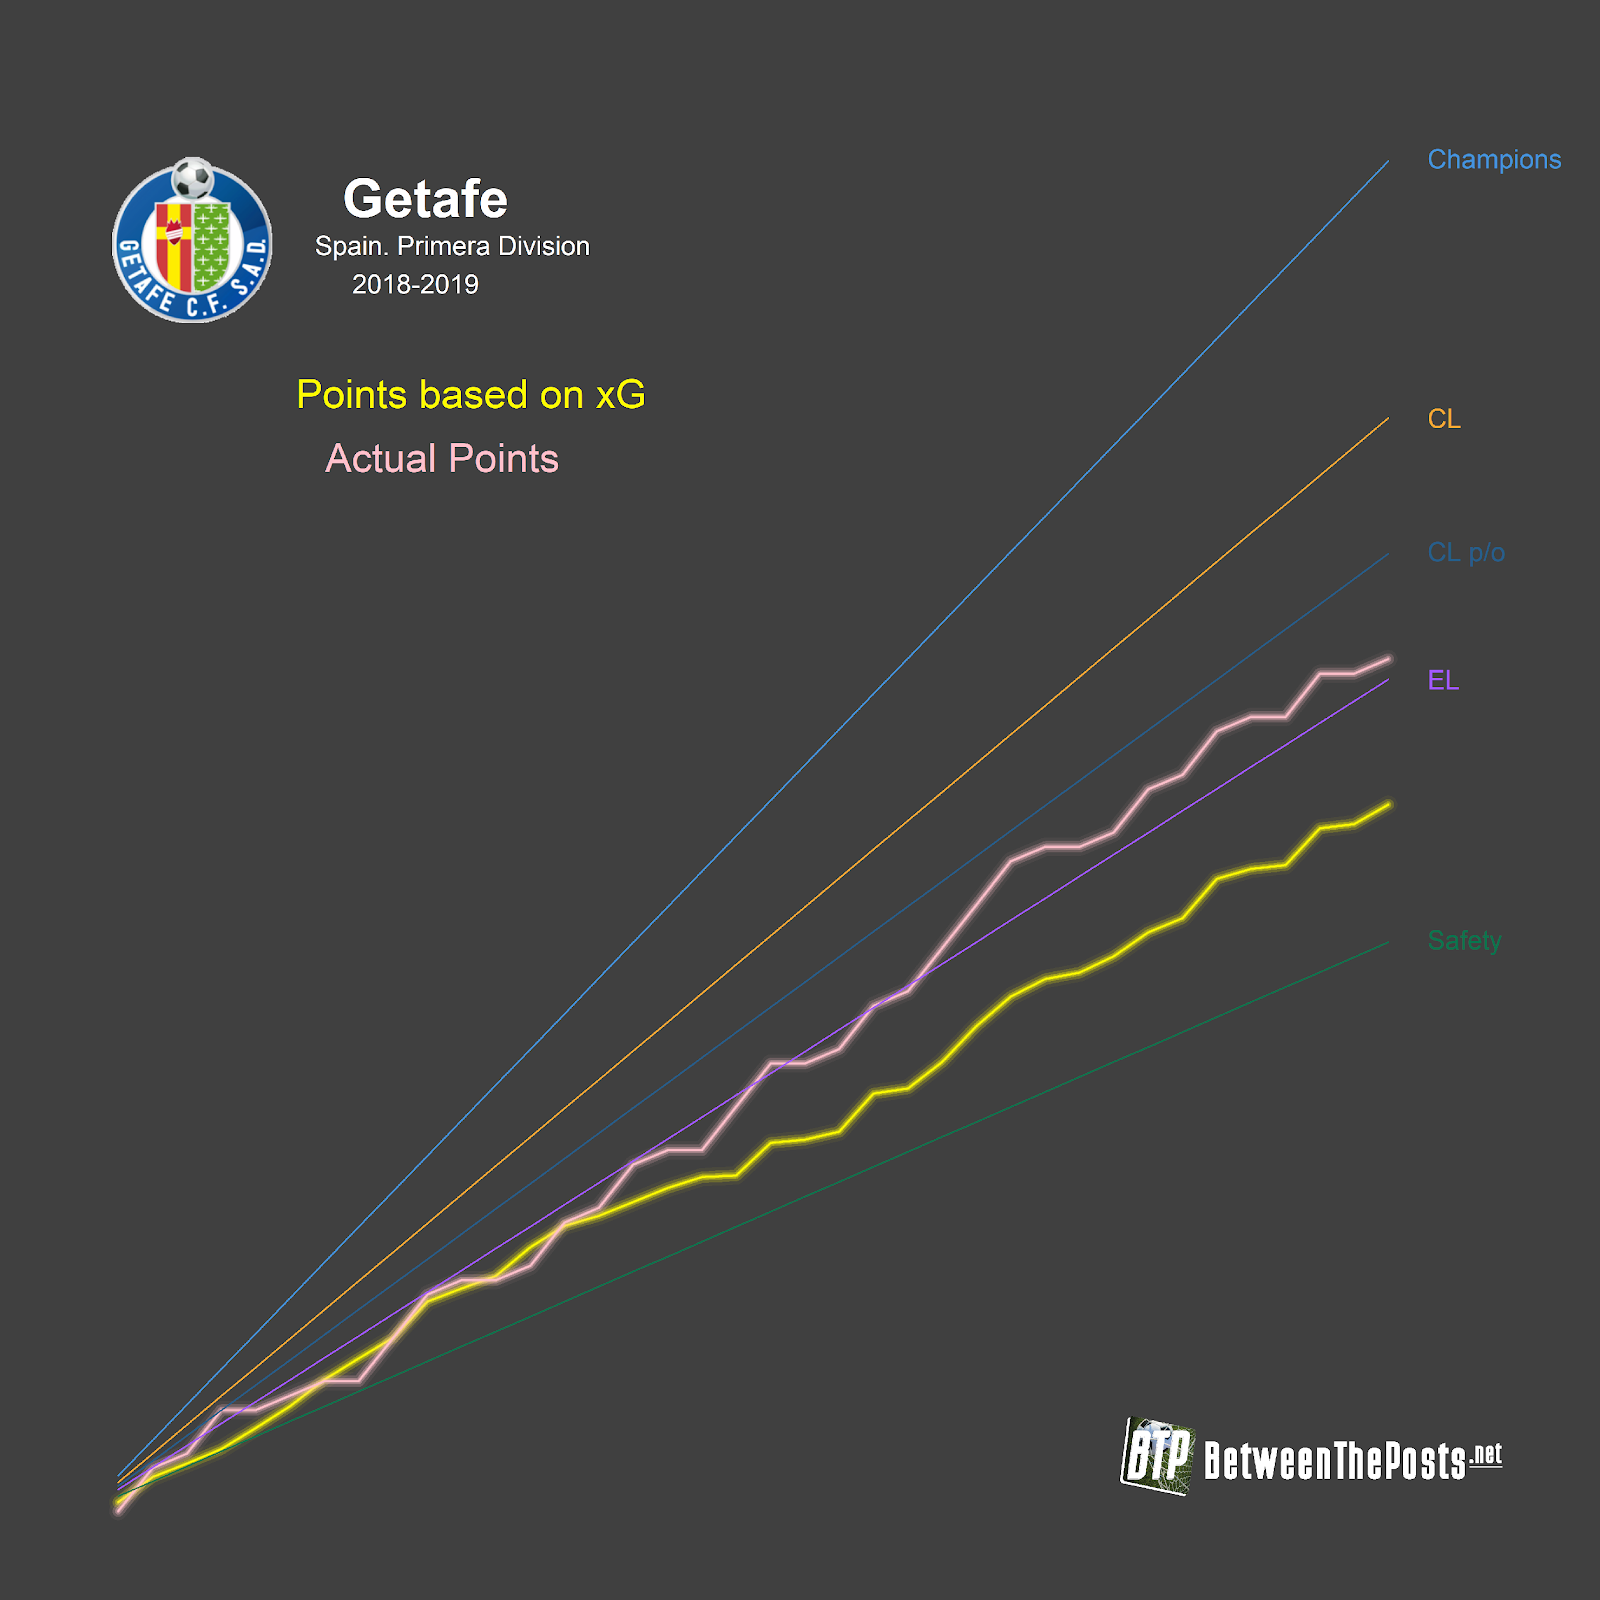 Getafe expected goals